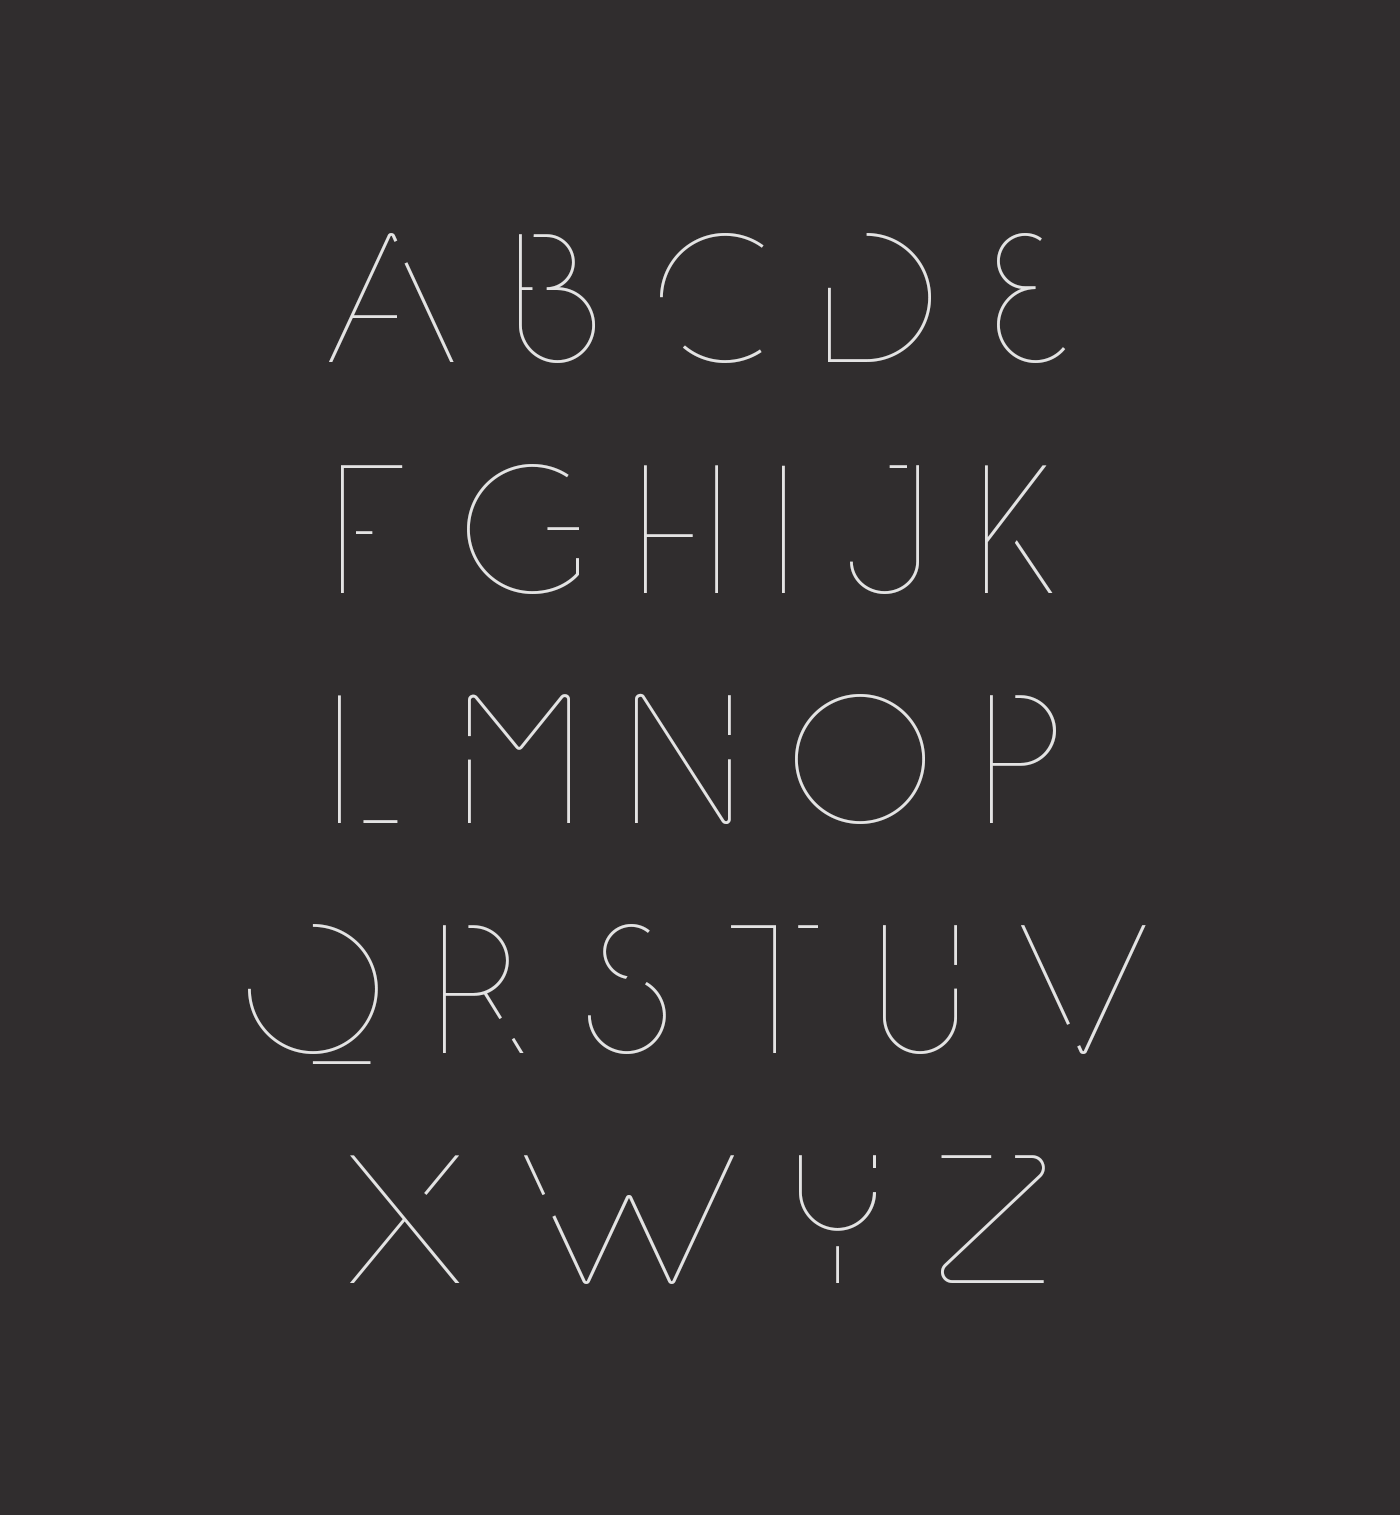 Speck Display Typeface